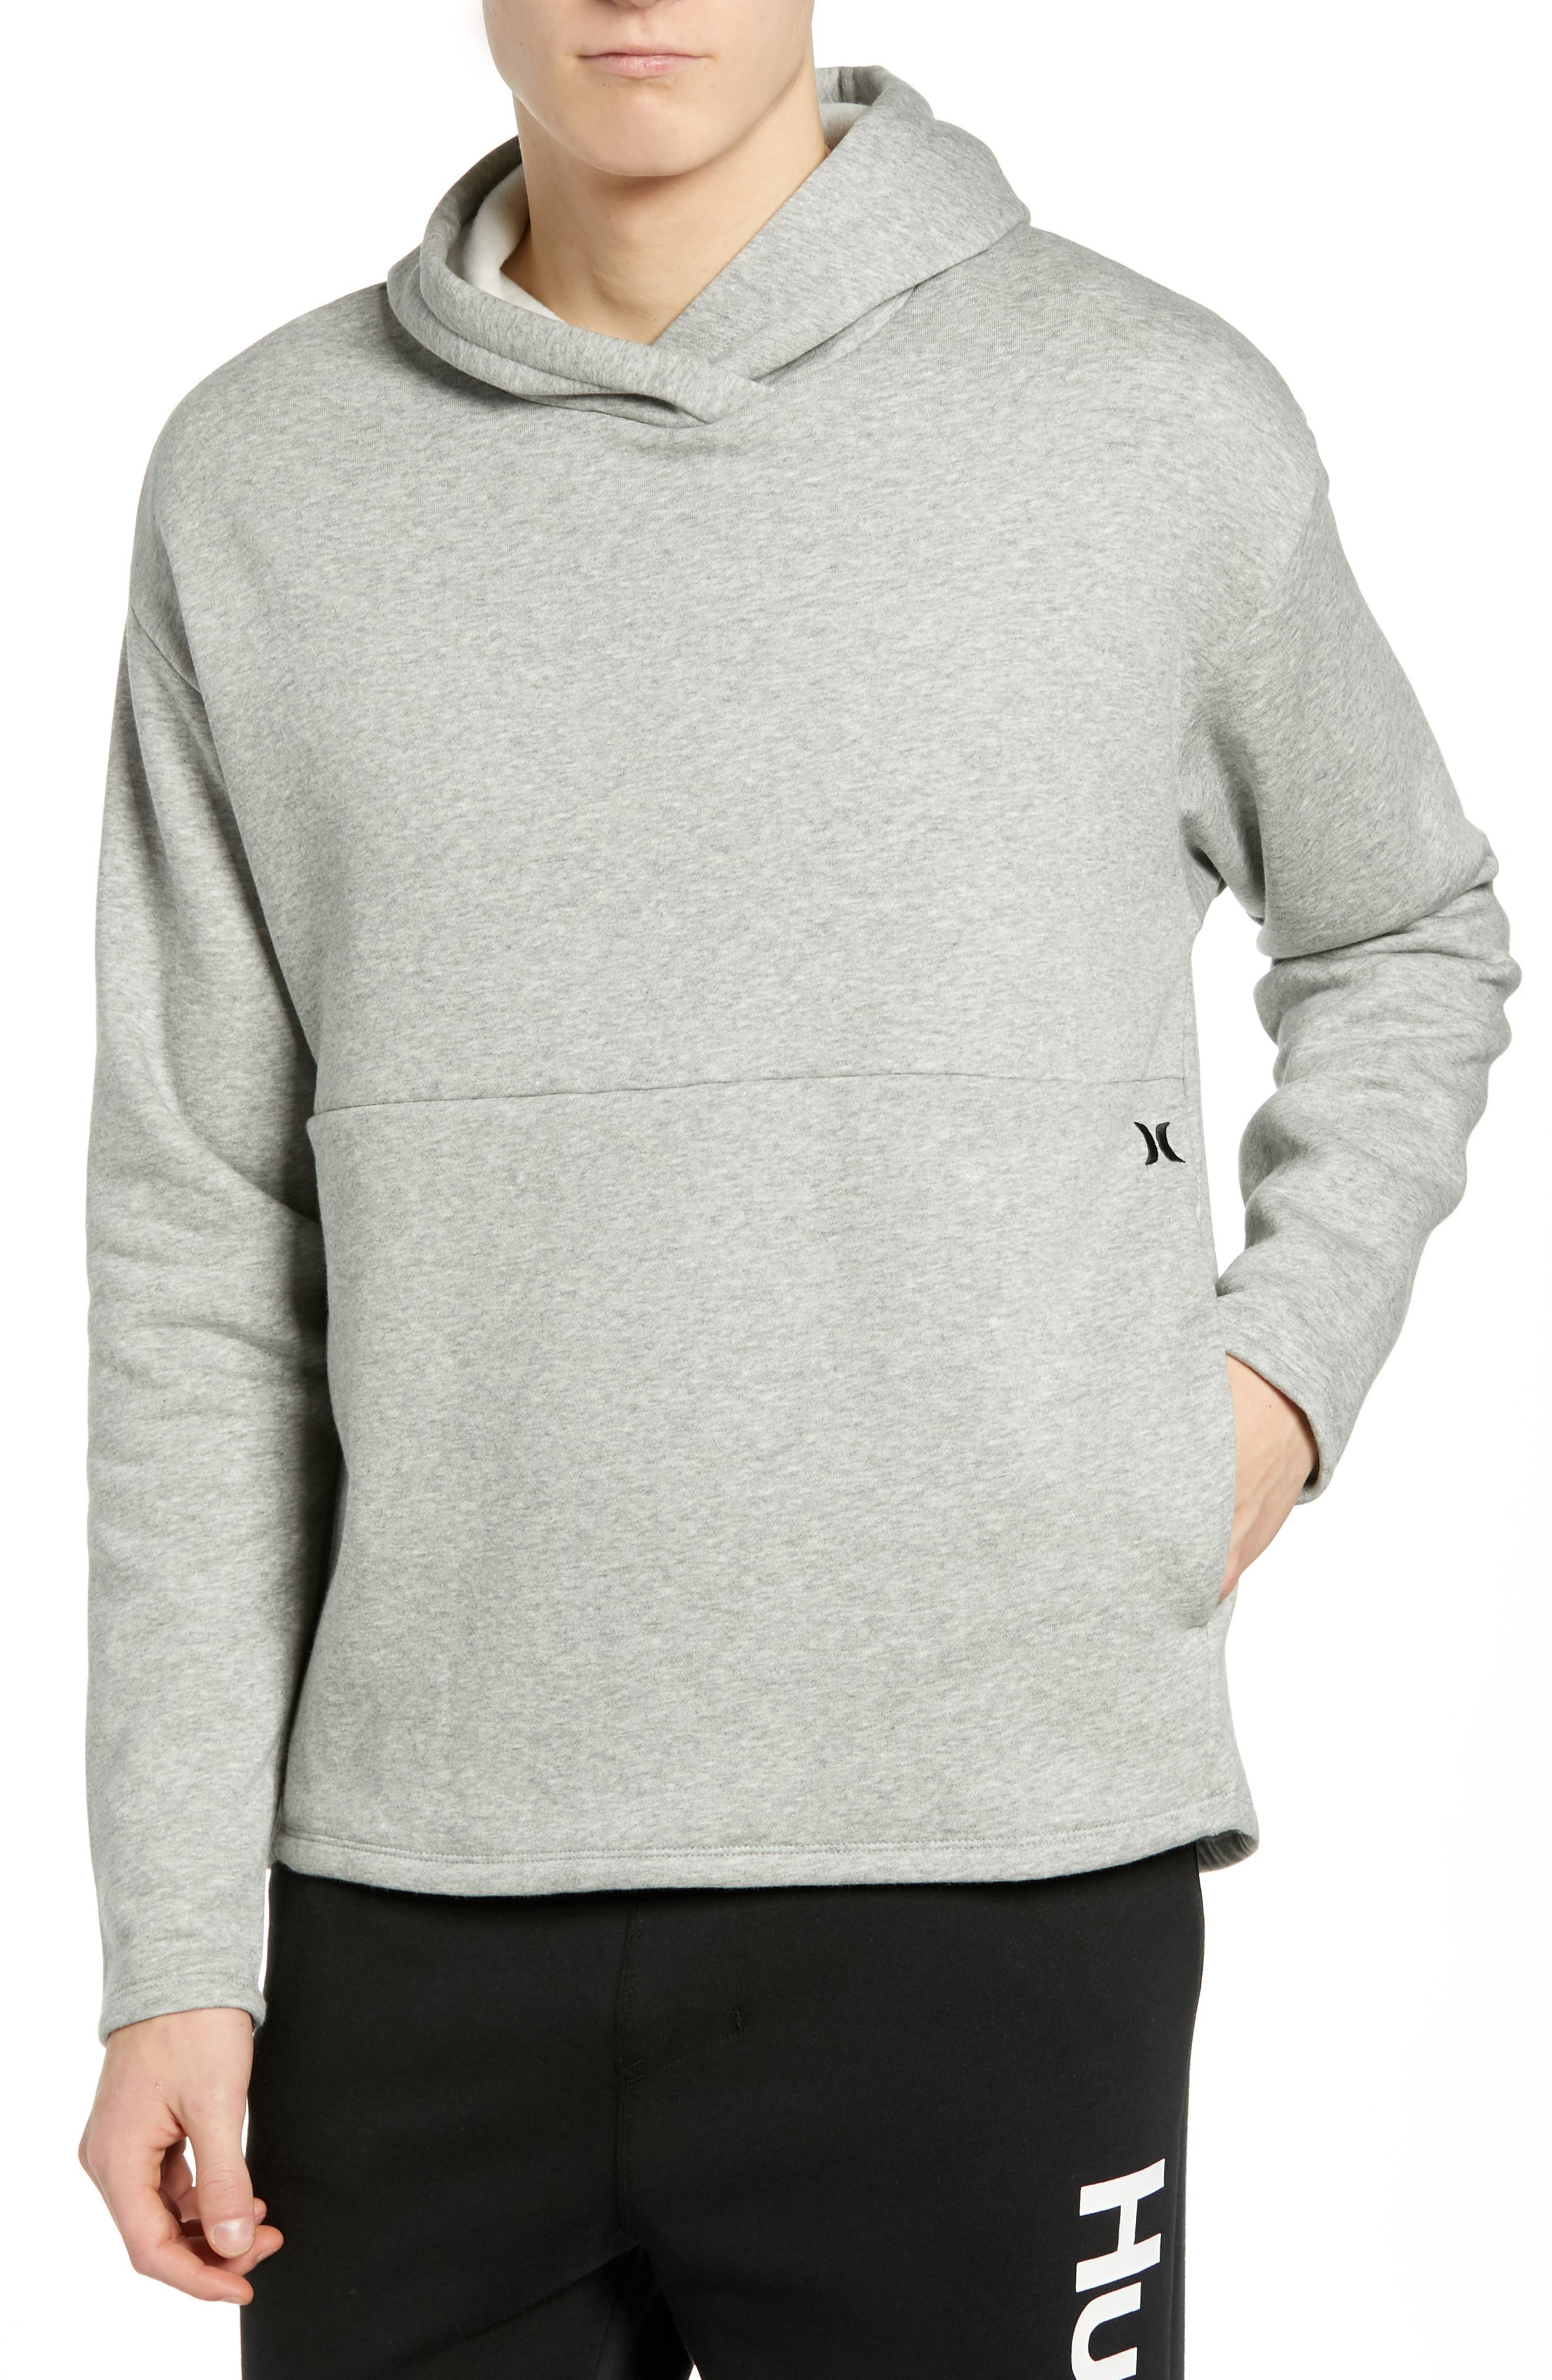 Hurley Surf Check Icon Pullover Hoodie, Grey